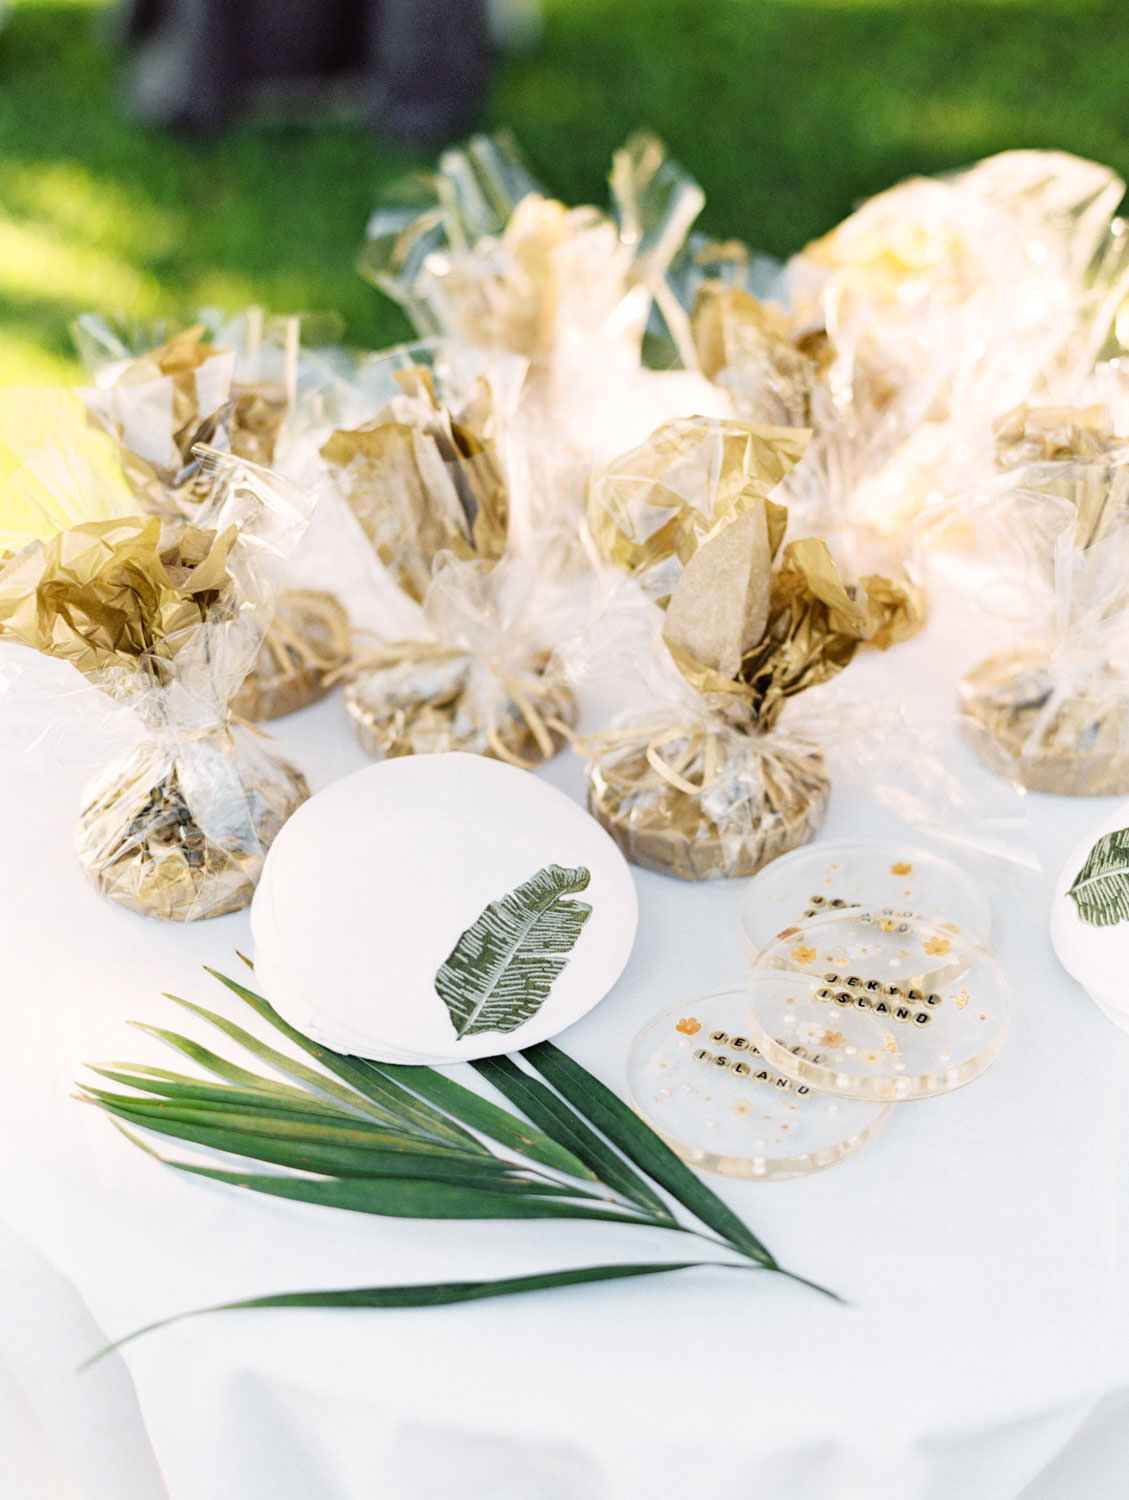 Ceremony favors for guests with white yarmulke with a banana leaf embroidered and custom acrylic drink coasters. Film photography at Jekyll Island Club Resort Wedding by Cavin Elizabeth Photography